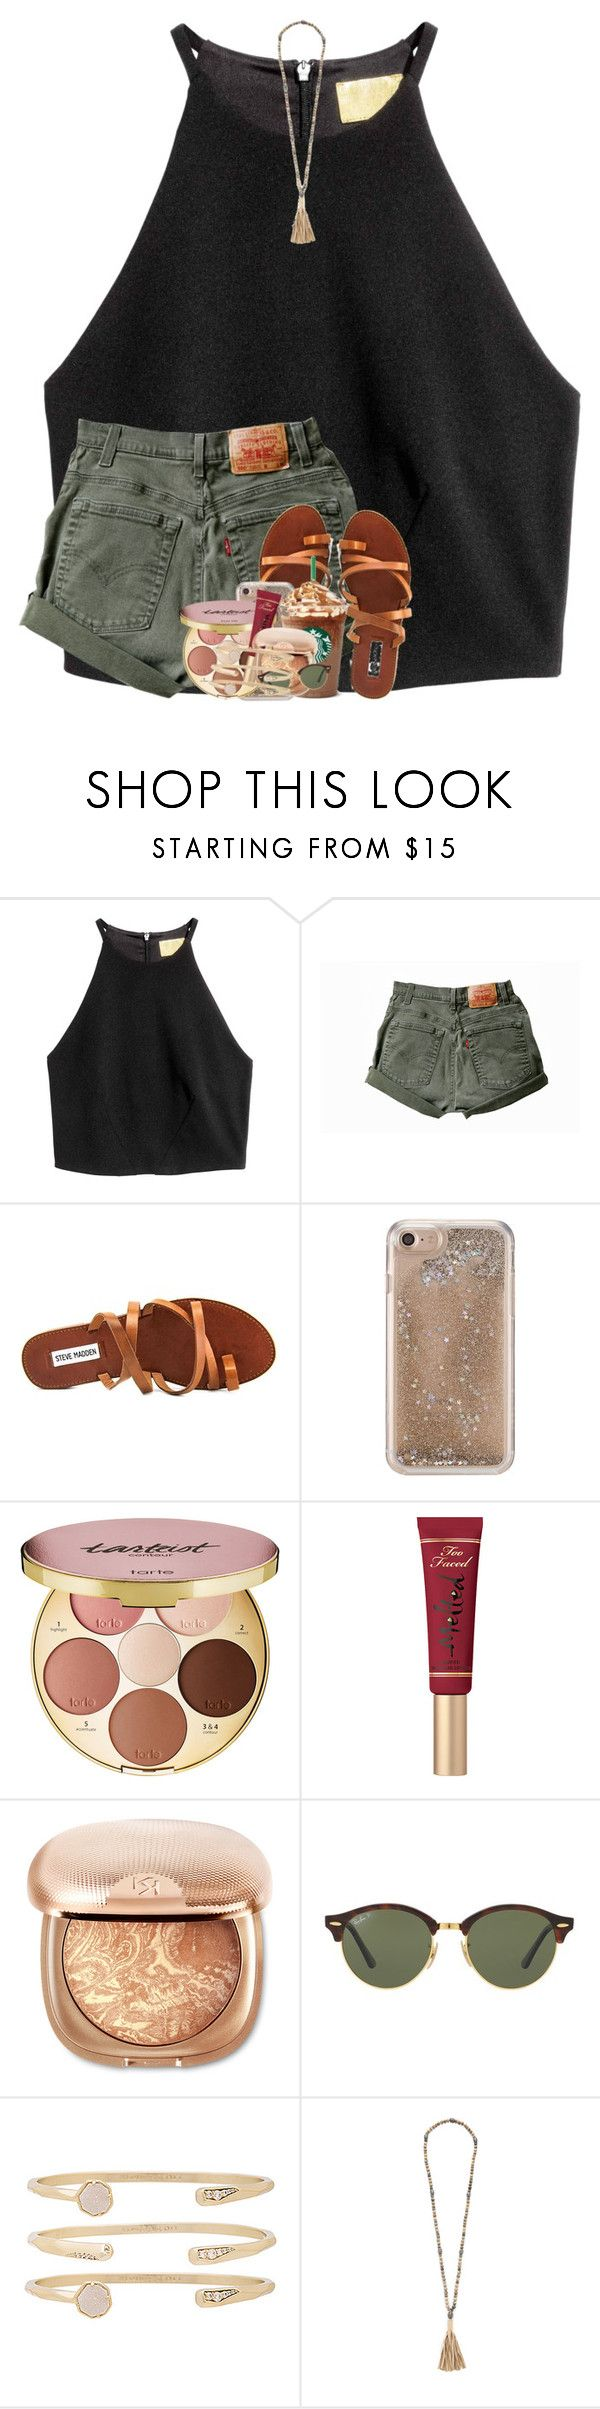 """""""you are beautiful regardless of what you think ;)"""" by emilyandella ❤ liked on Polyvore featuring Steve Madden, Agent 18, tarte, Too Faced Cosmetics, Ray-Ban, Kendra Scott and Hipchik"""